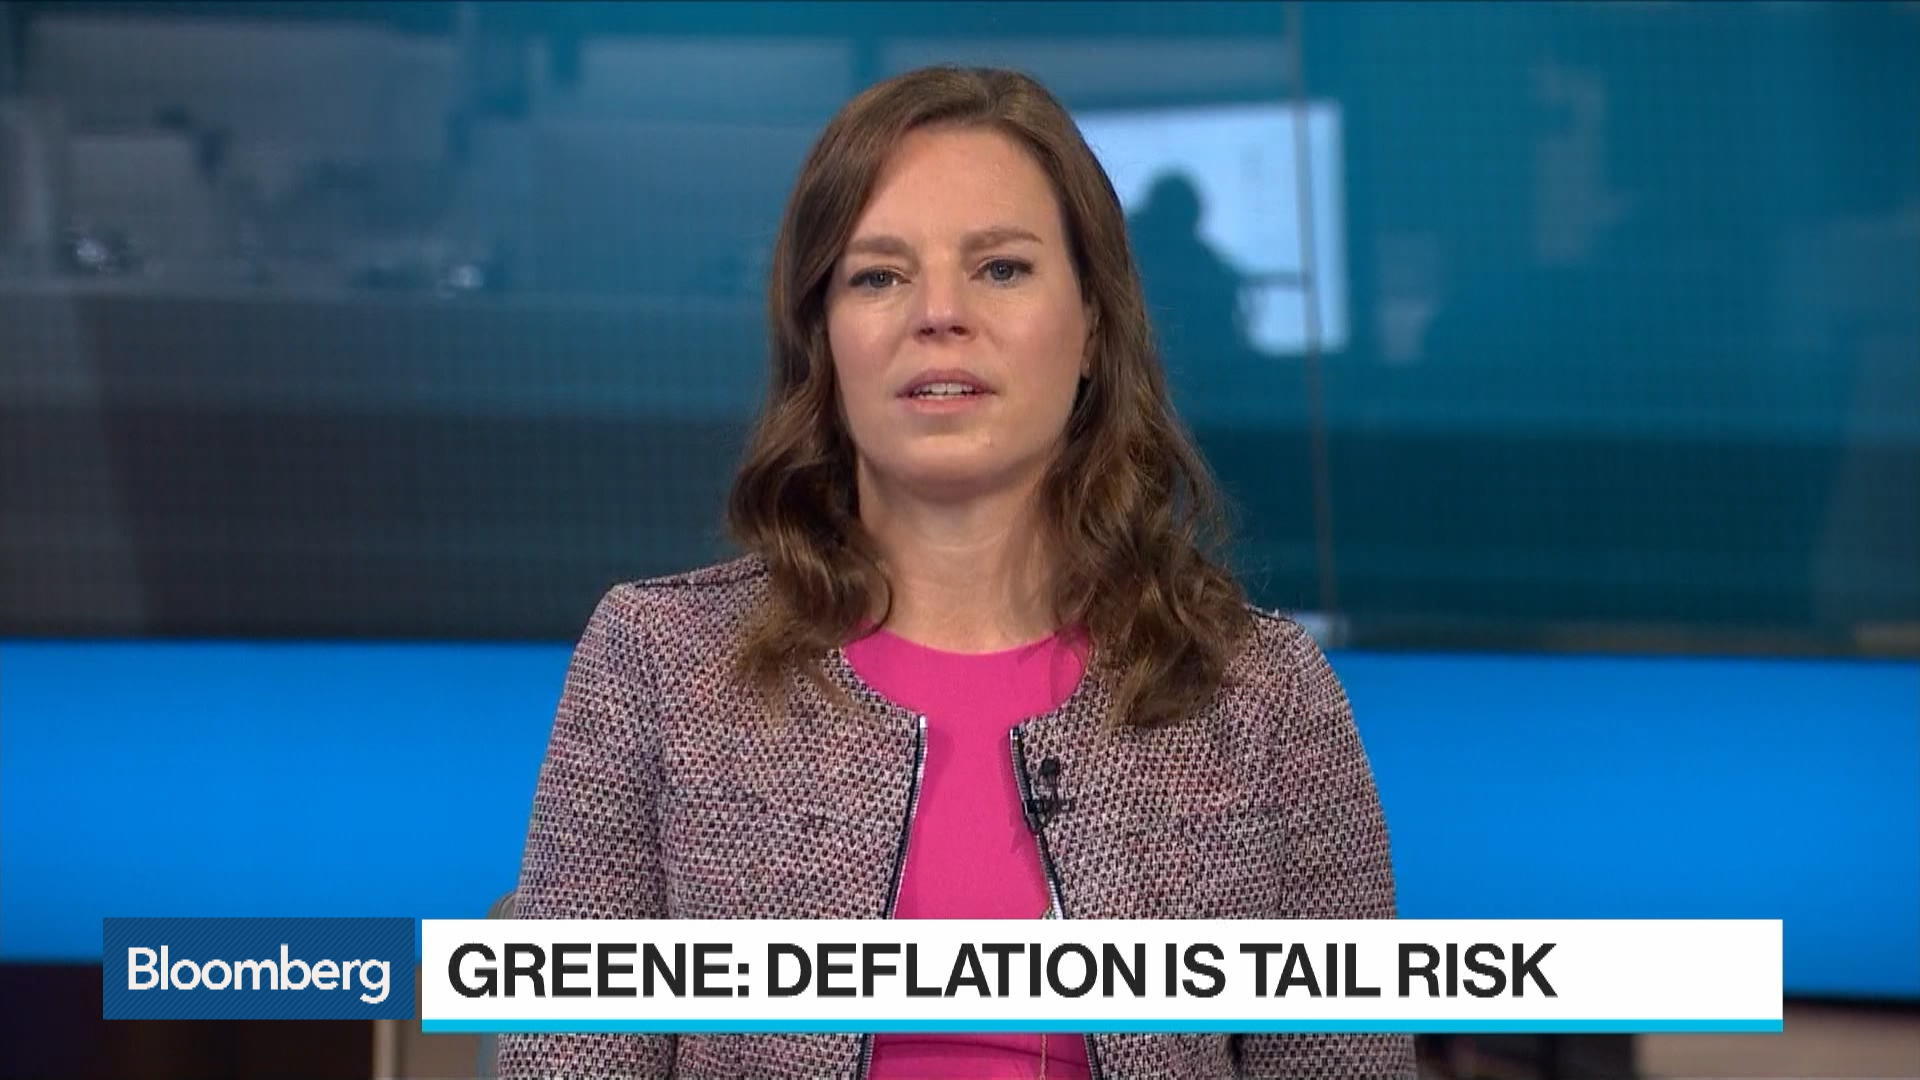 Deflation Is the Tail Risk Now for U.S., Economist Greene Says